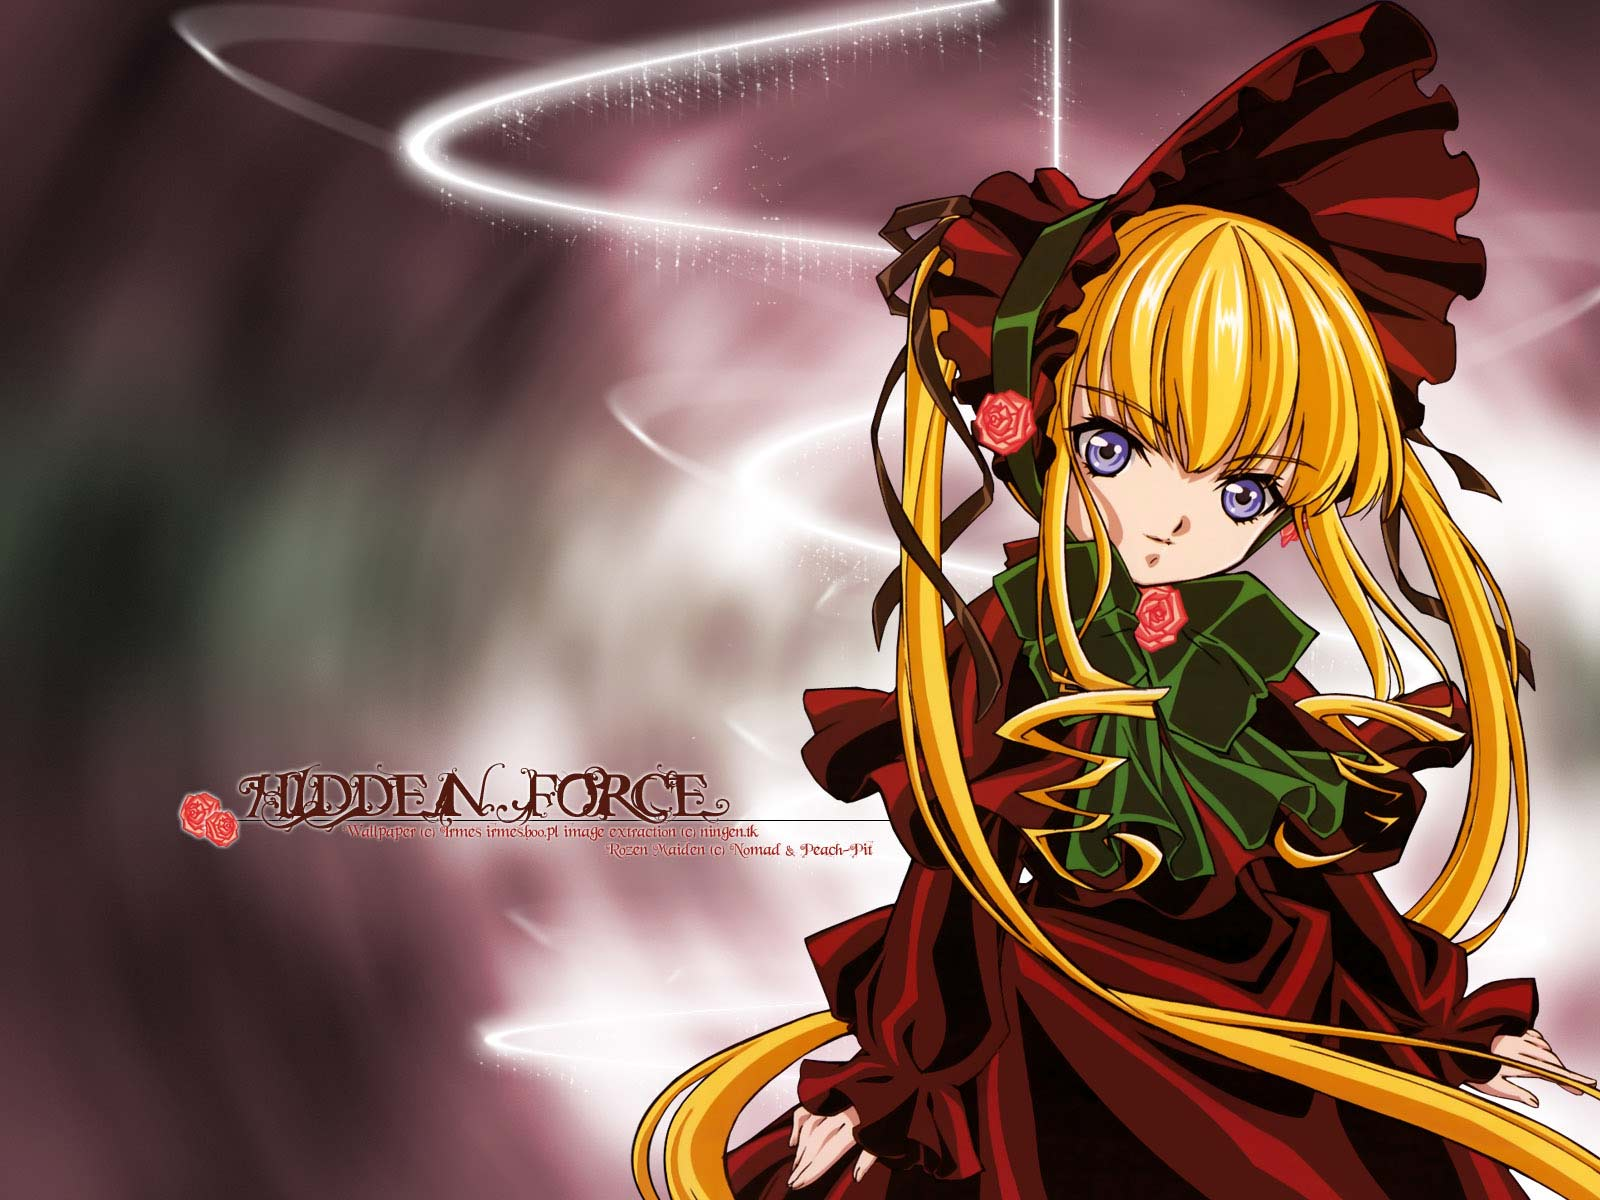 Moonlight Summoner's Anime Sekai: Rozen Maiden ローゼン・メイデン ...